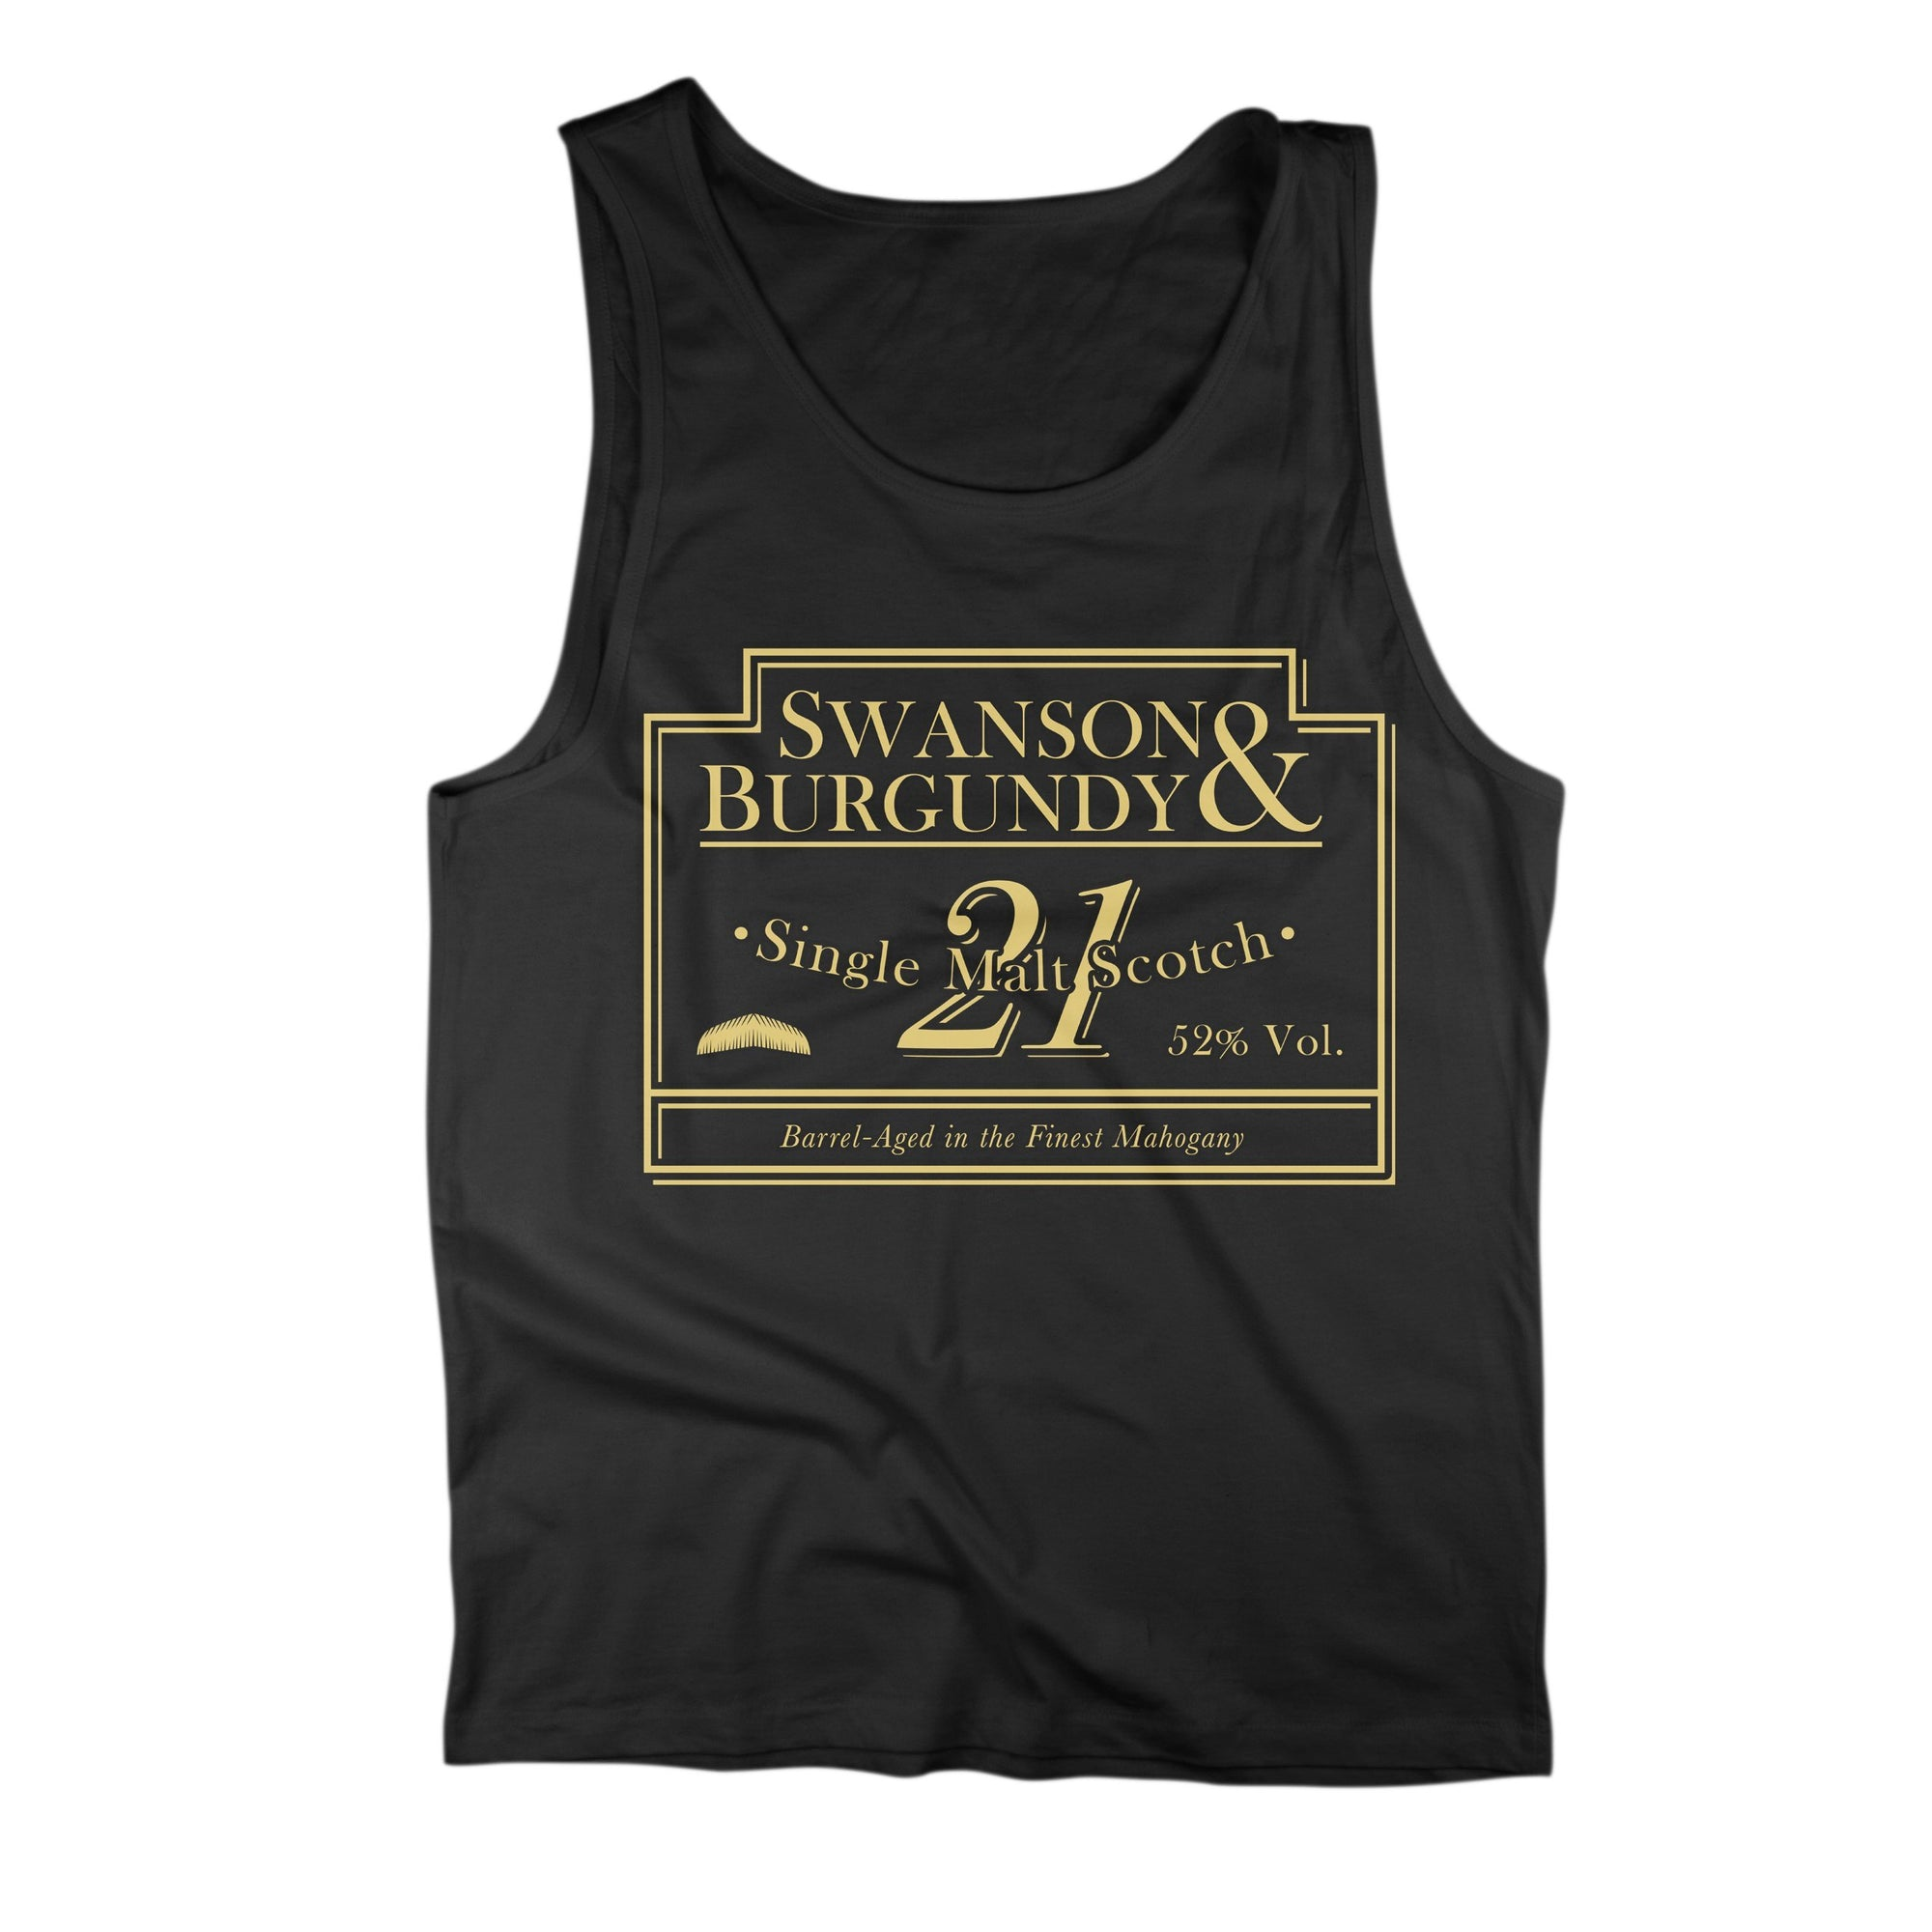 Swanson & Burgundy Scotch Tank Top